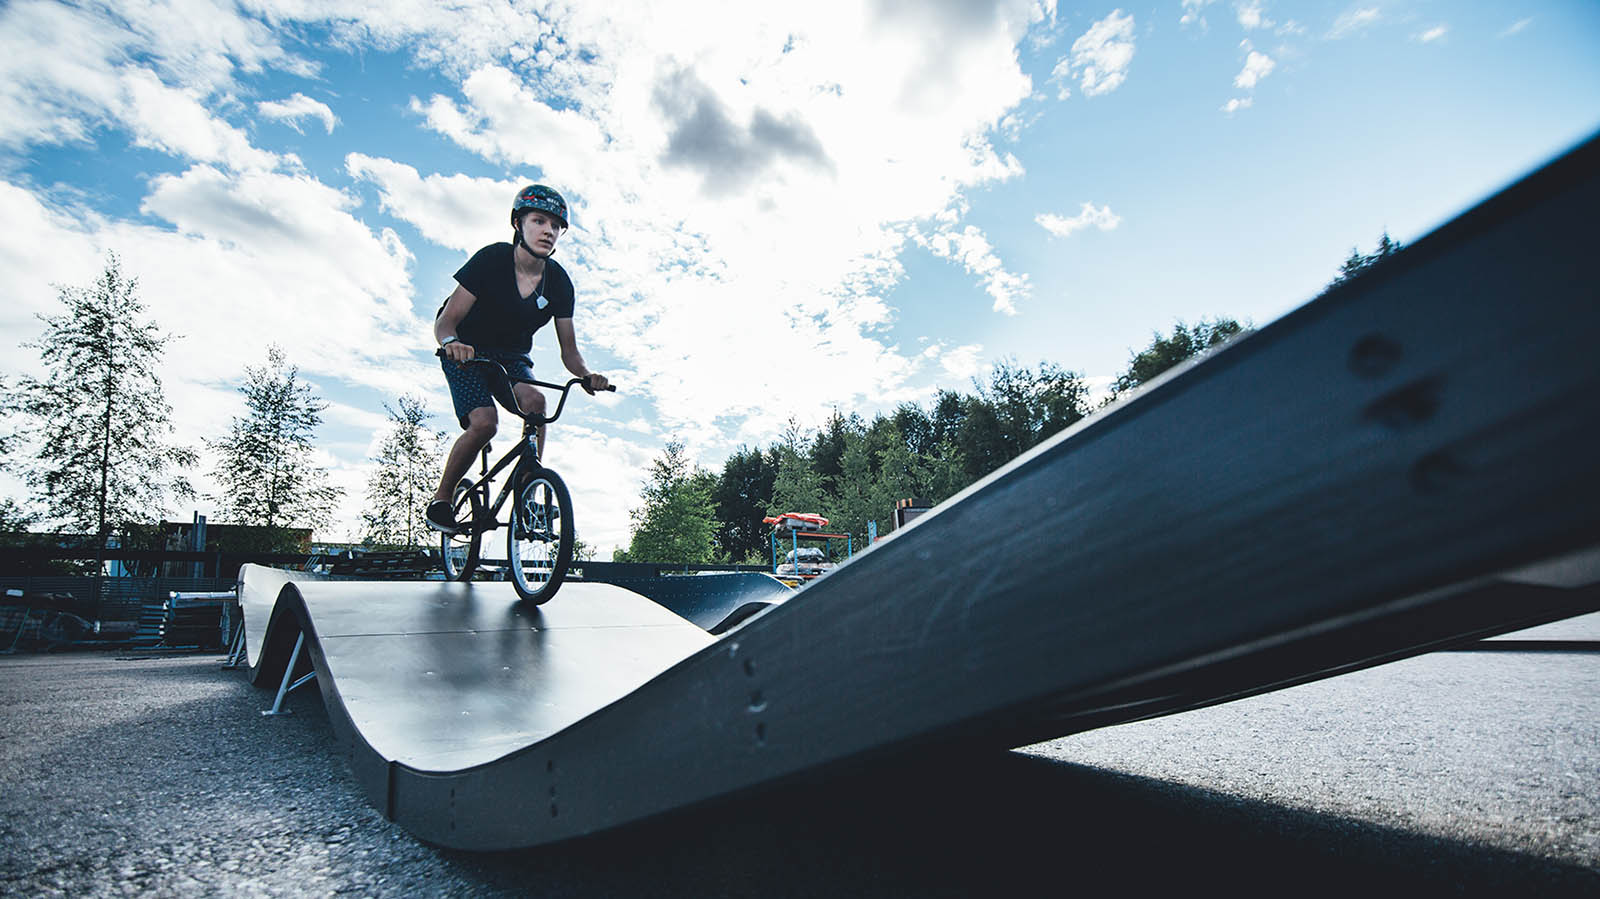 PUMPTRACK_081621_S.jpg